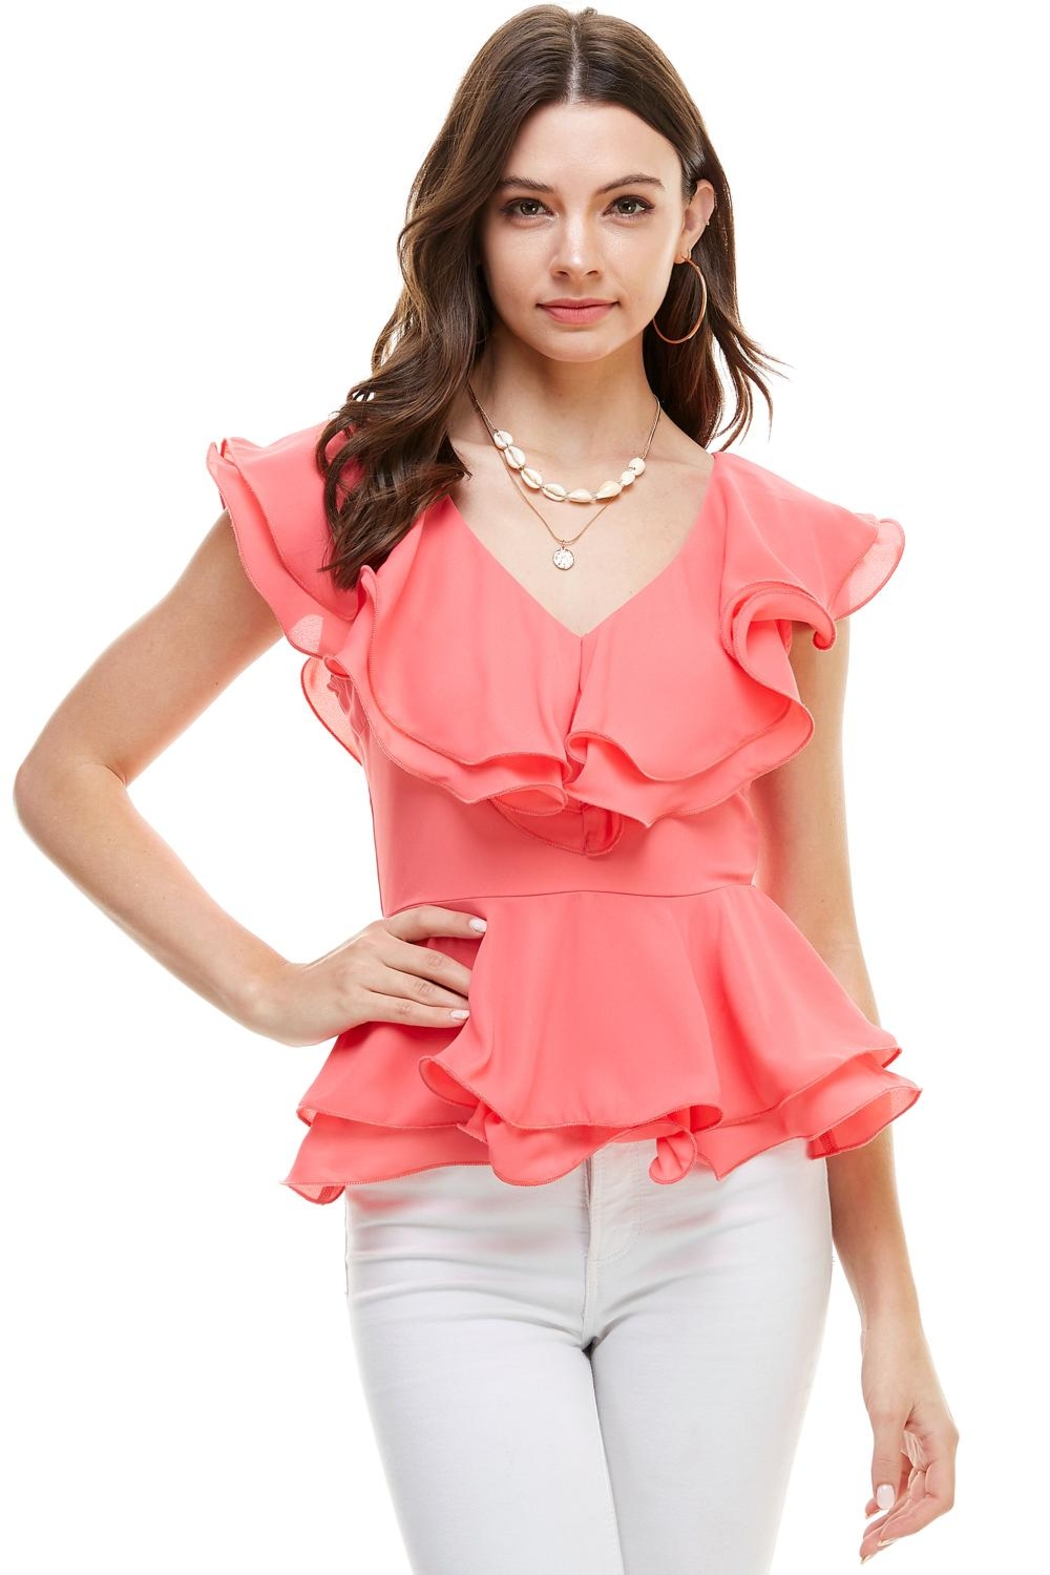 Miley and Molly Double Ruffles Peplum Blouse Top - Main Image